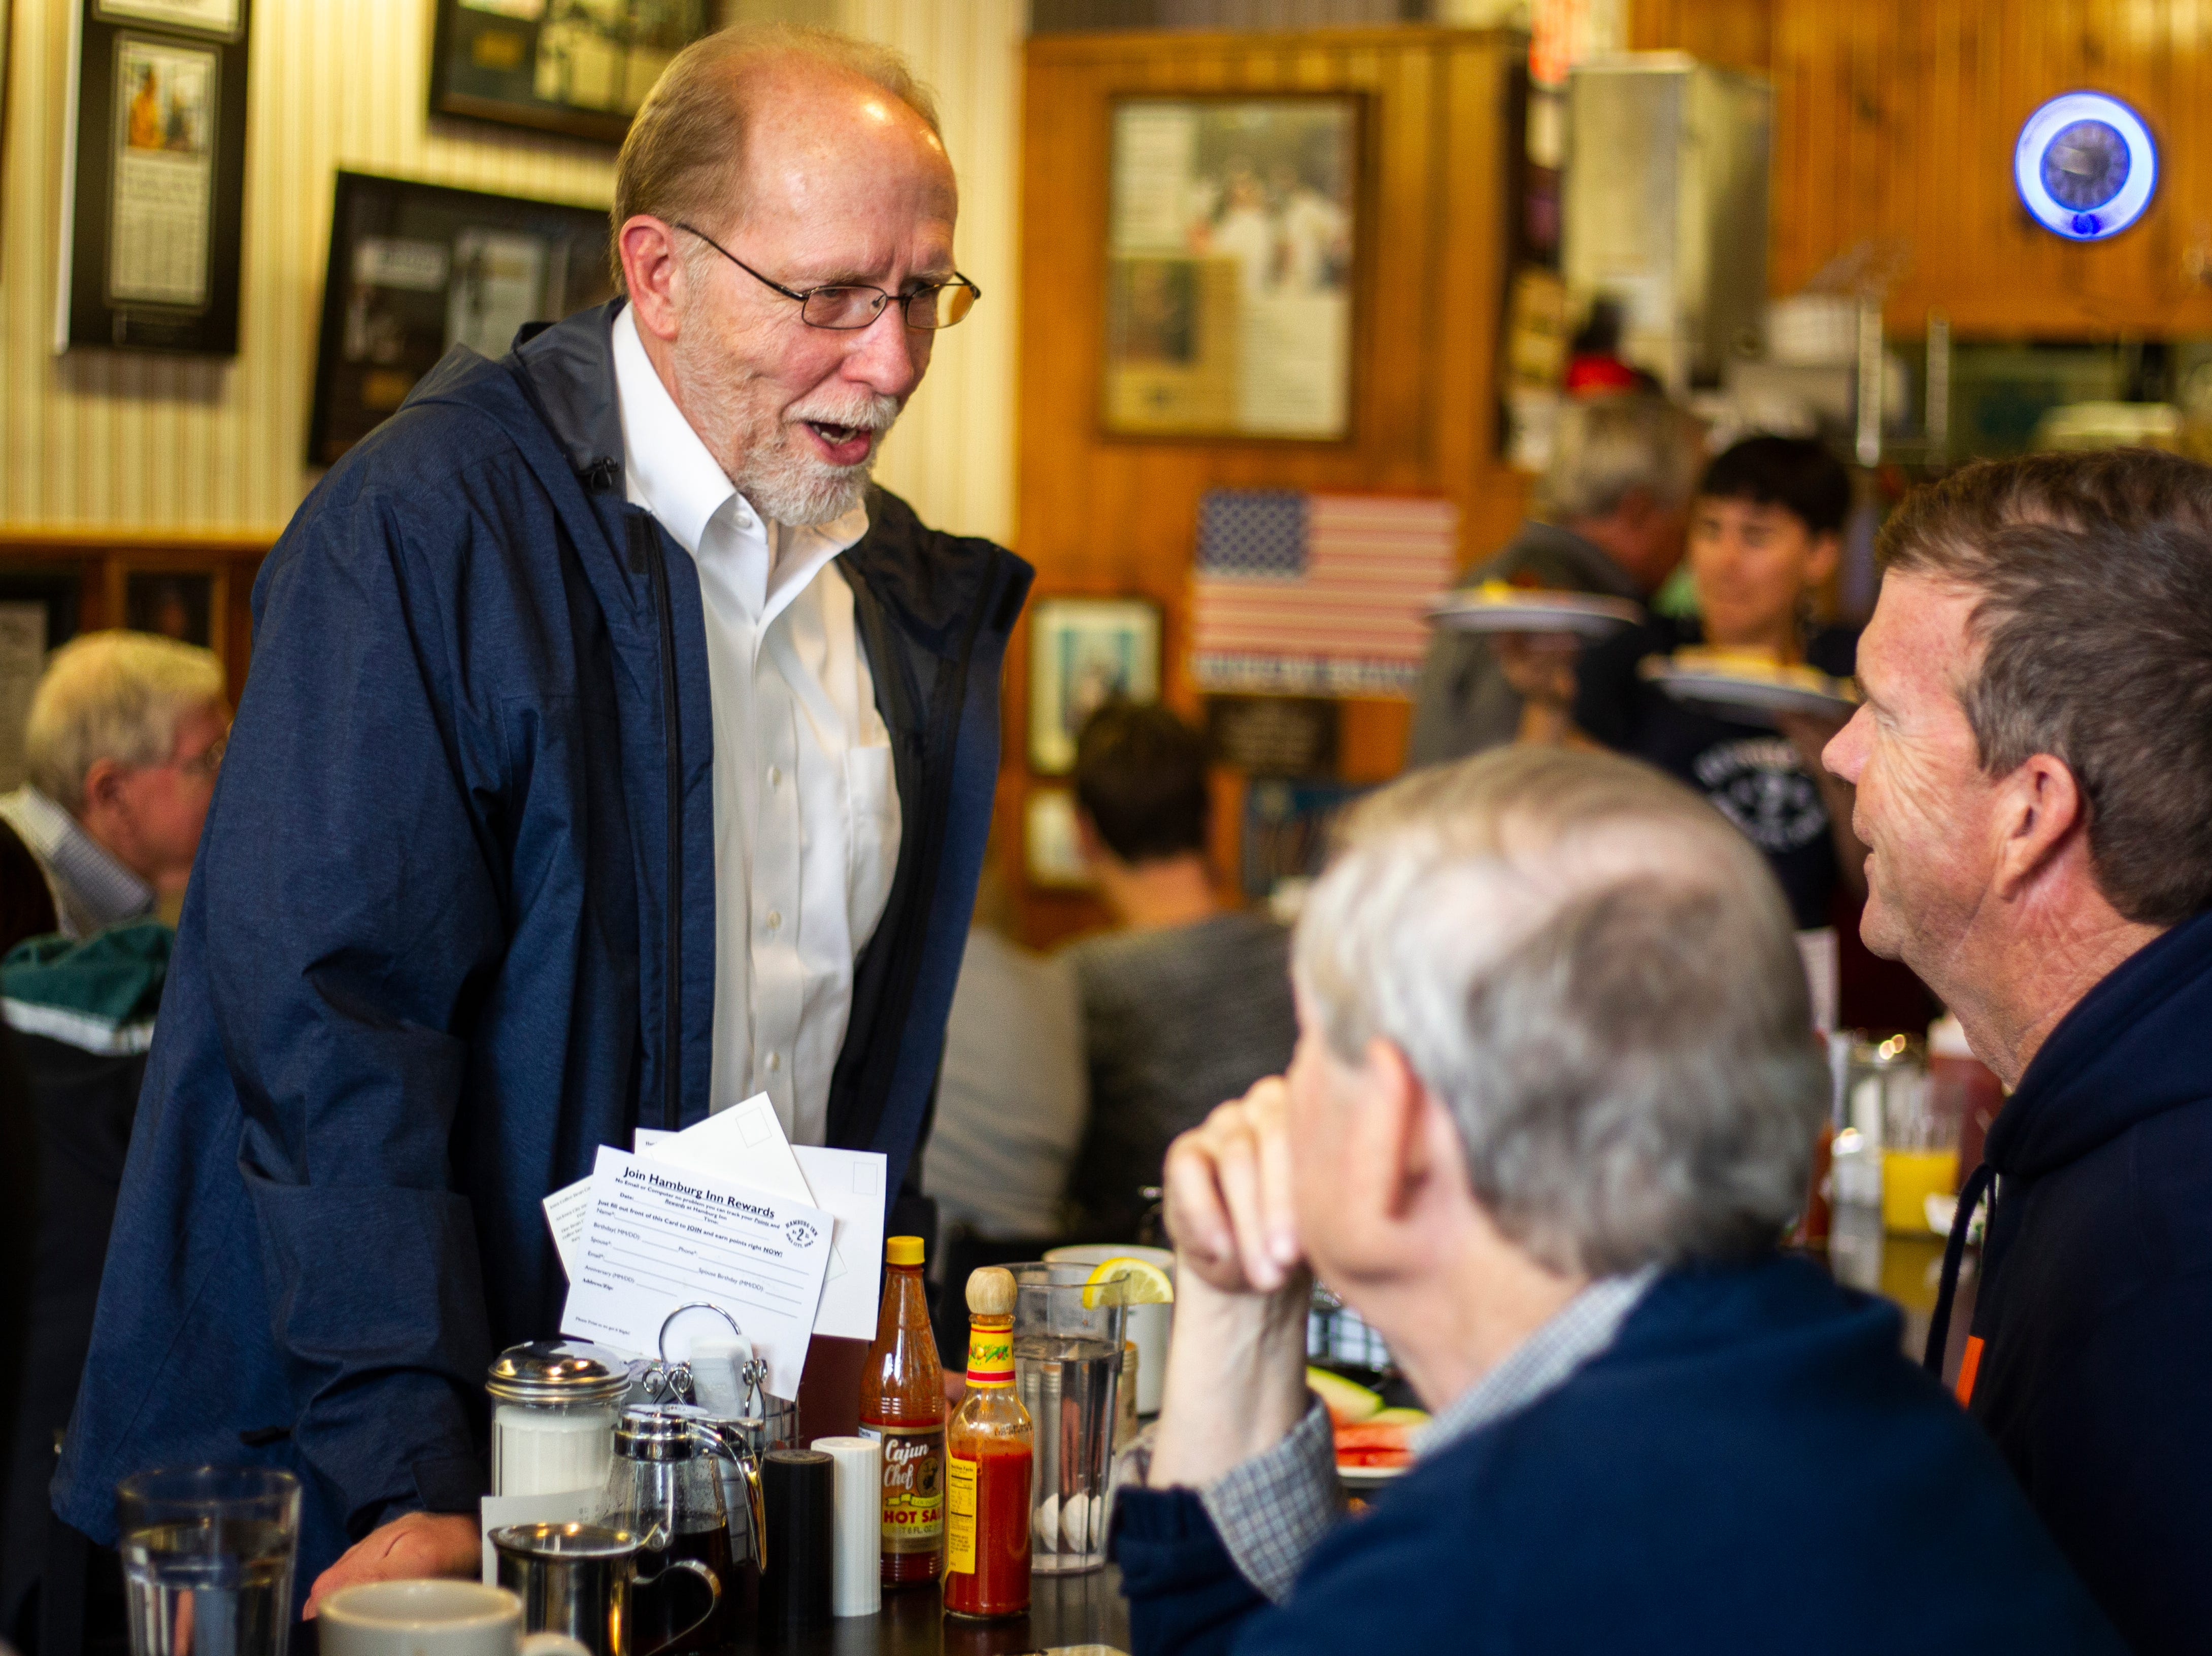 U.S. Rep. Dave Loebsack, D-Iowa, talks with constituents on Thursday morning, Nov. 1, 2018, at Hamburg Inn No. 2 on Linn Street in Iowa City.